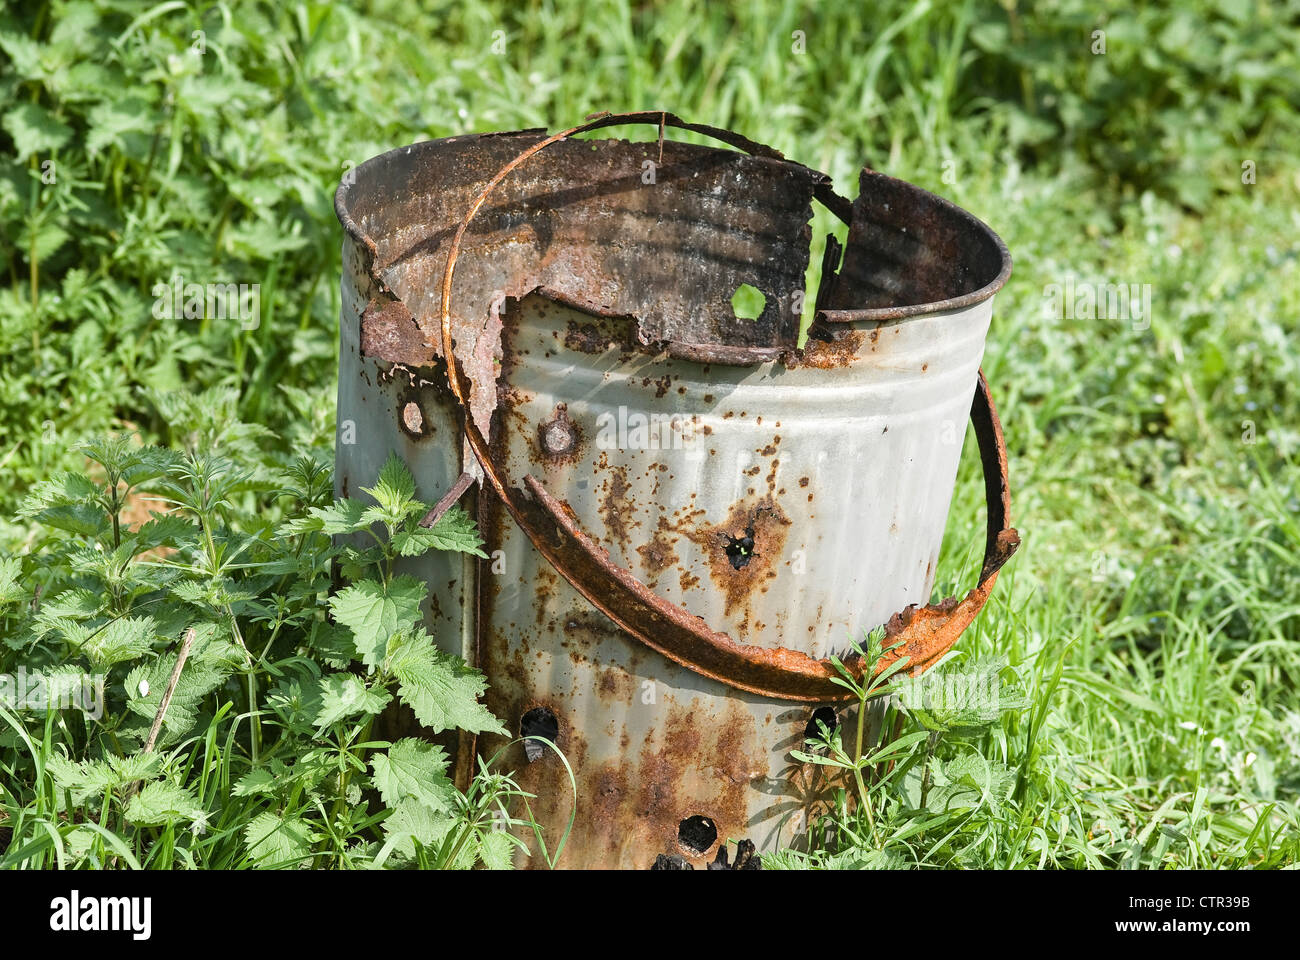 Old rusting incinerator on waste land in a garden Stock Photo